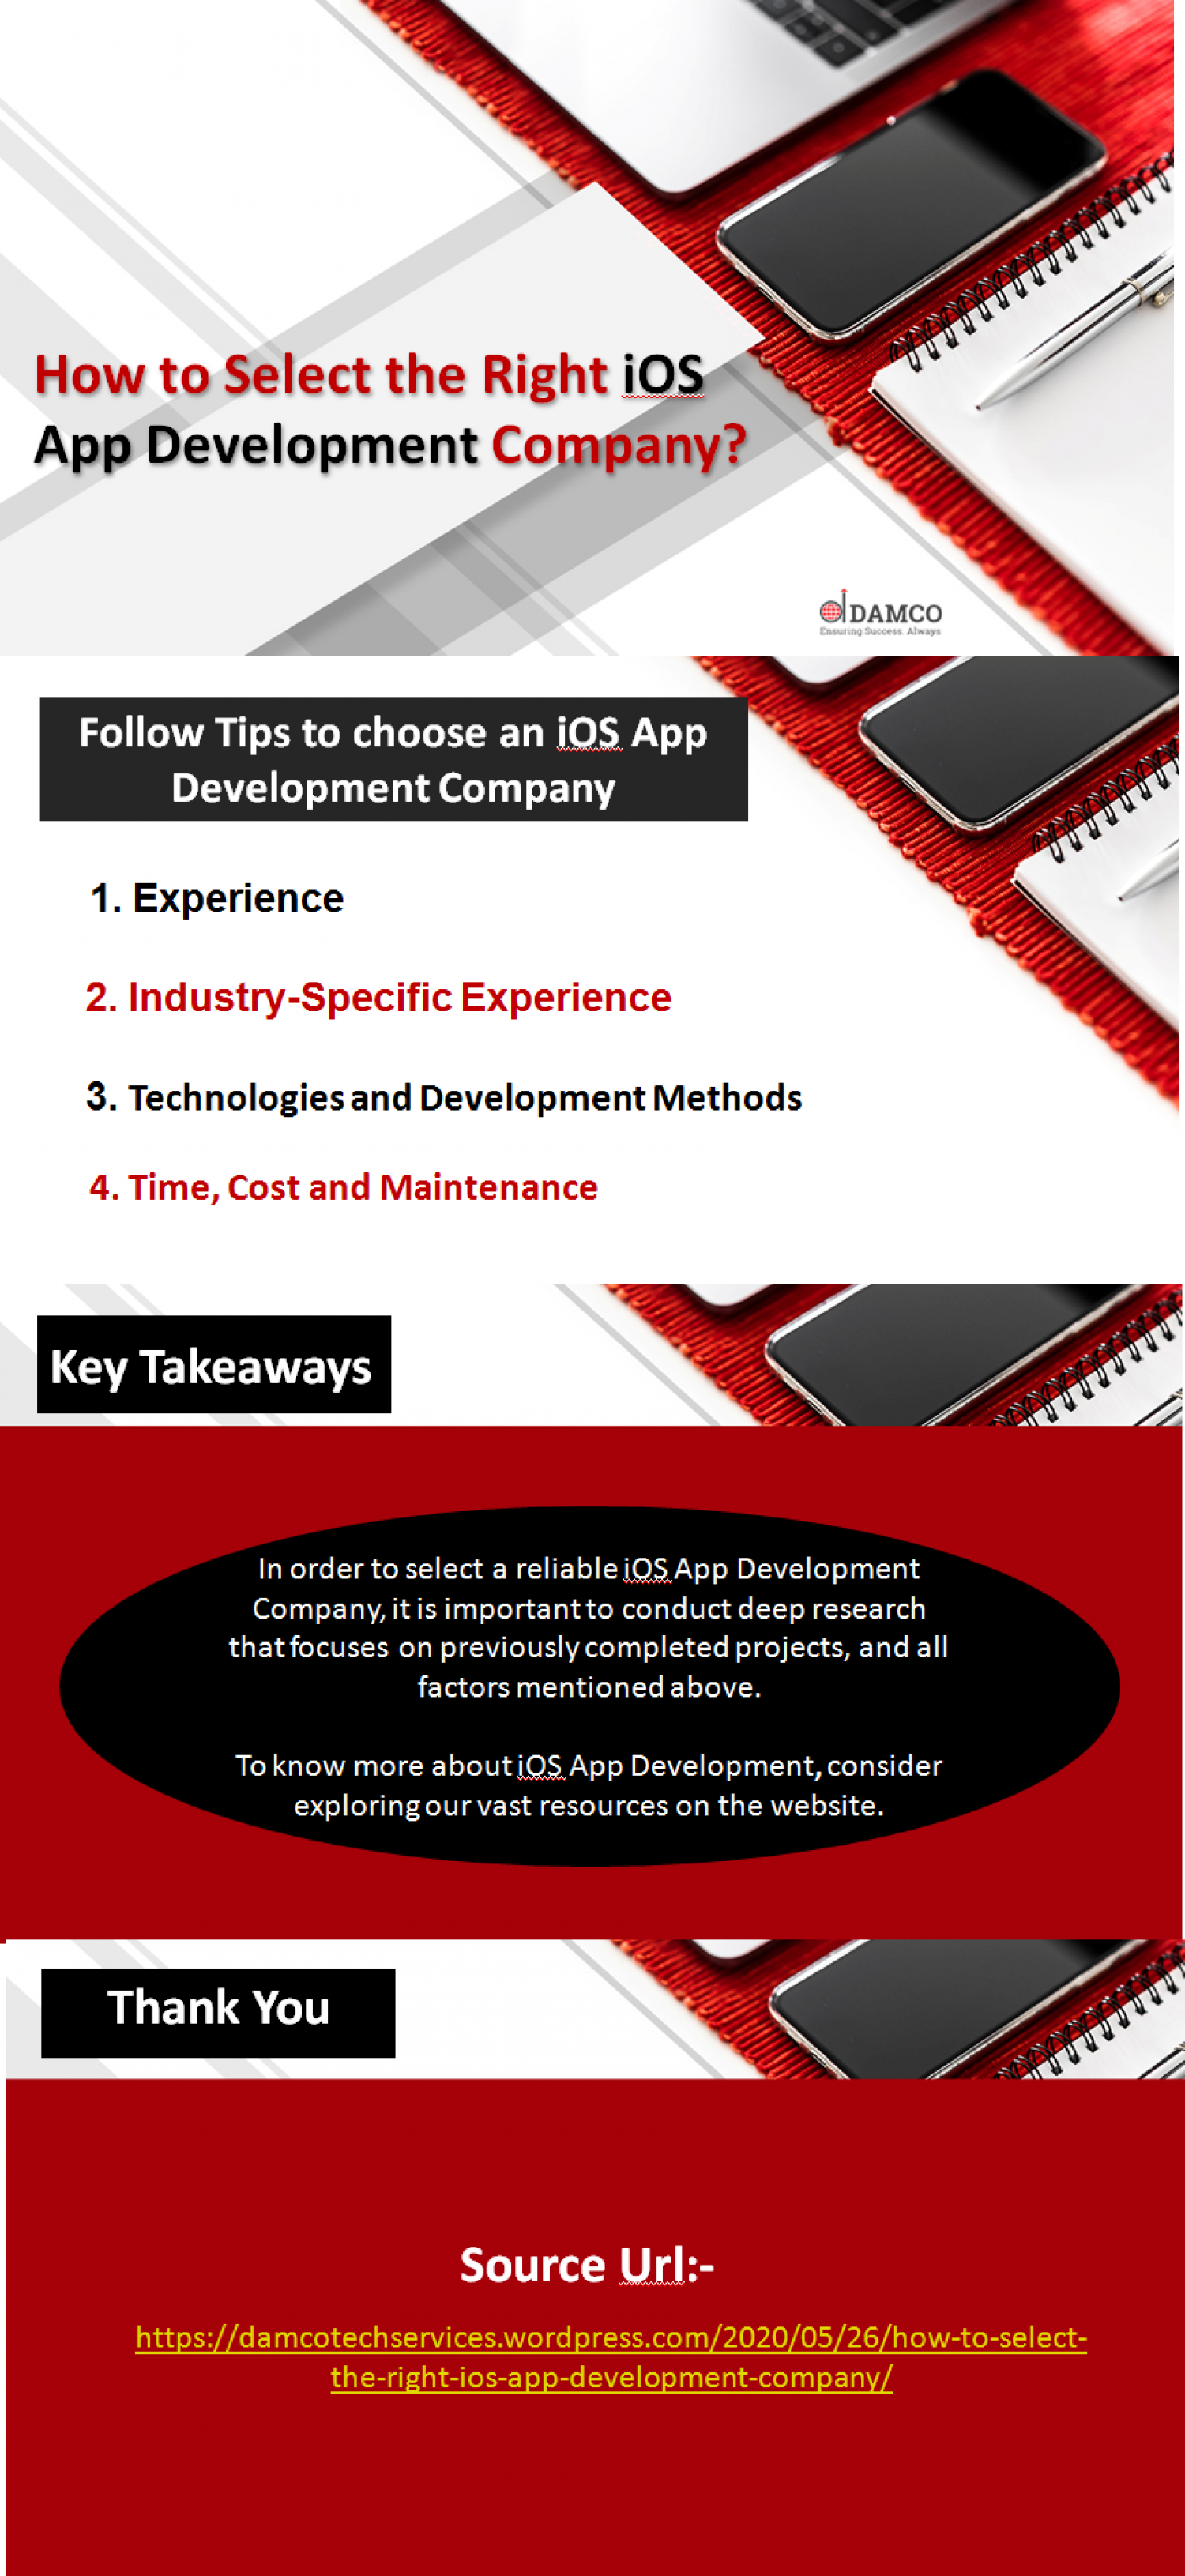 How to Select the Right iOS App Development Company? Infographic